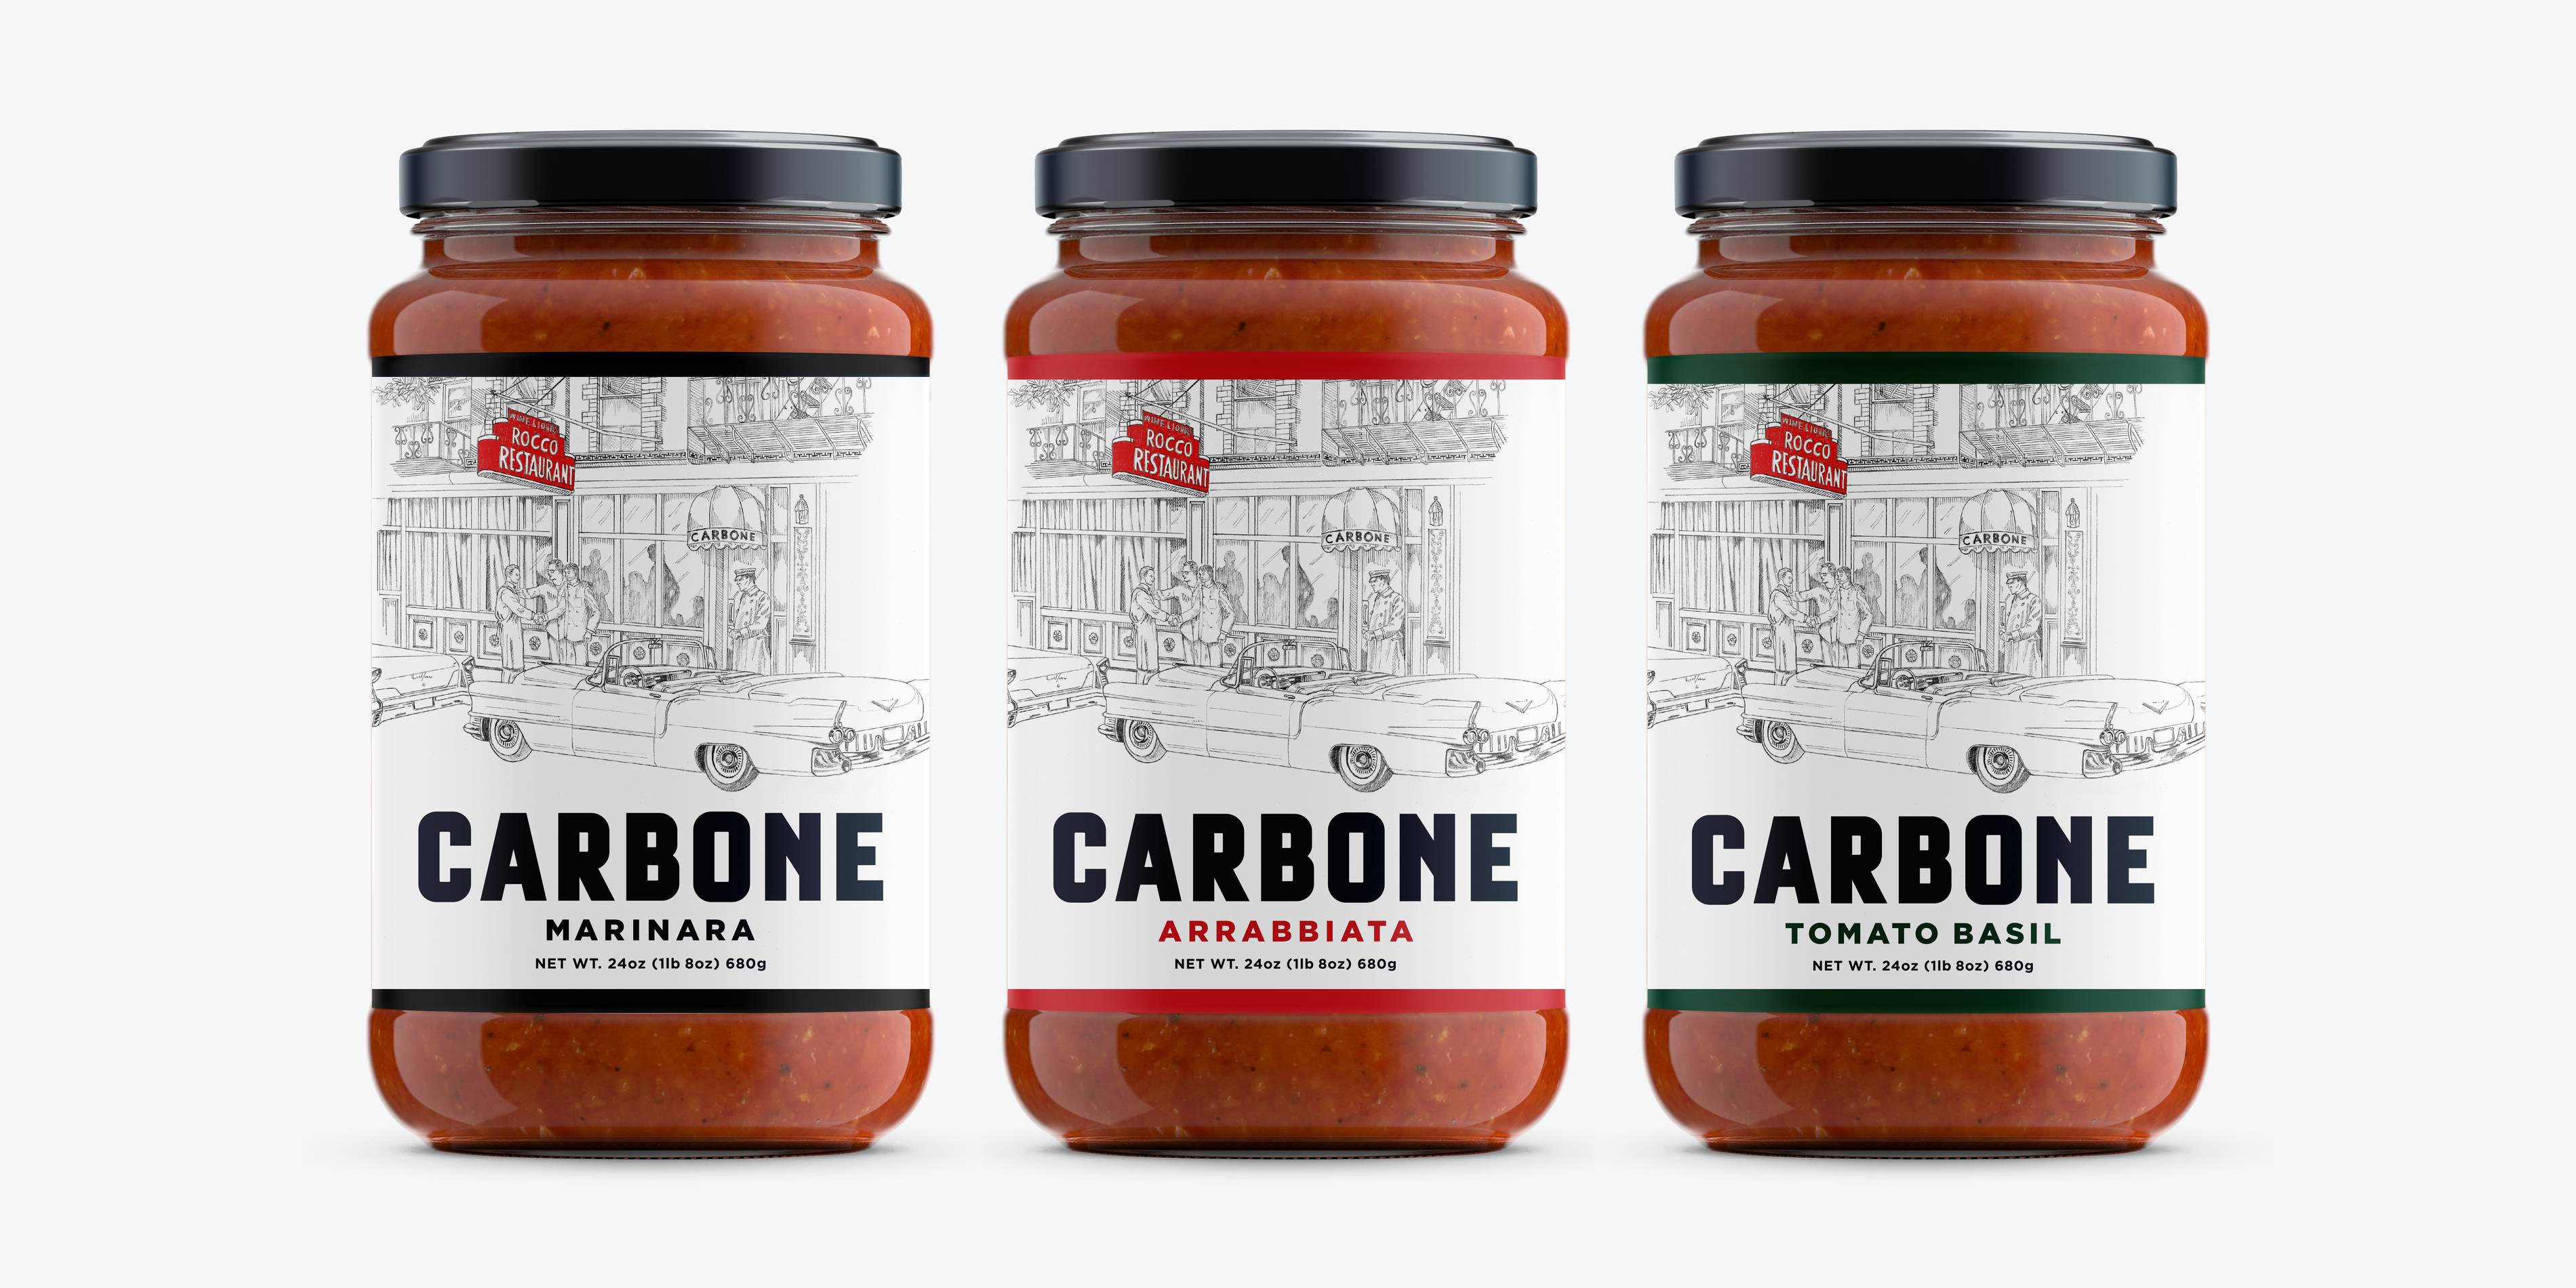 Carbone Fine Food presents Carbone original pasta sauces